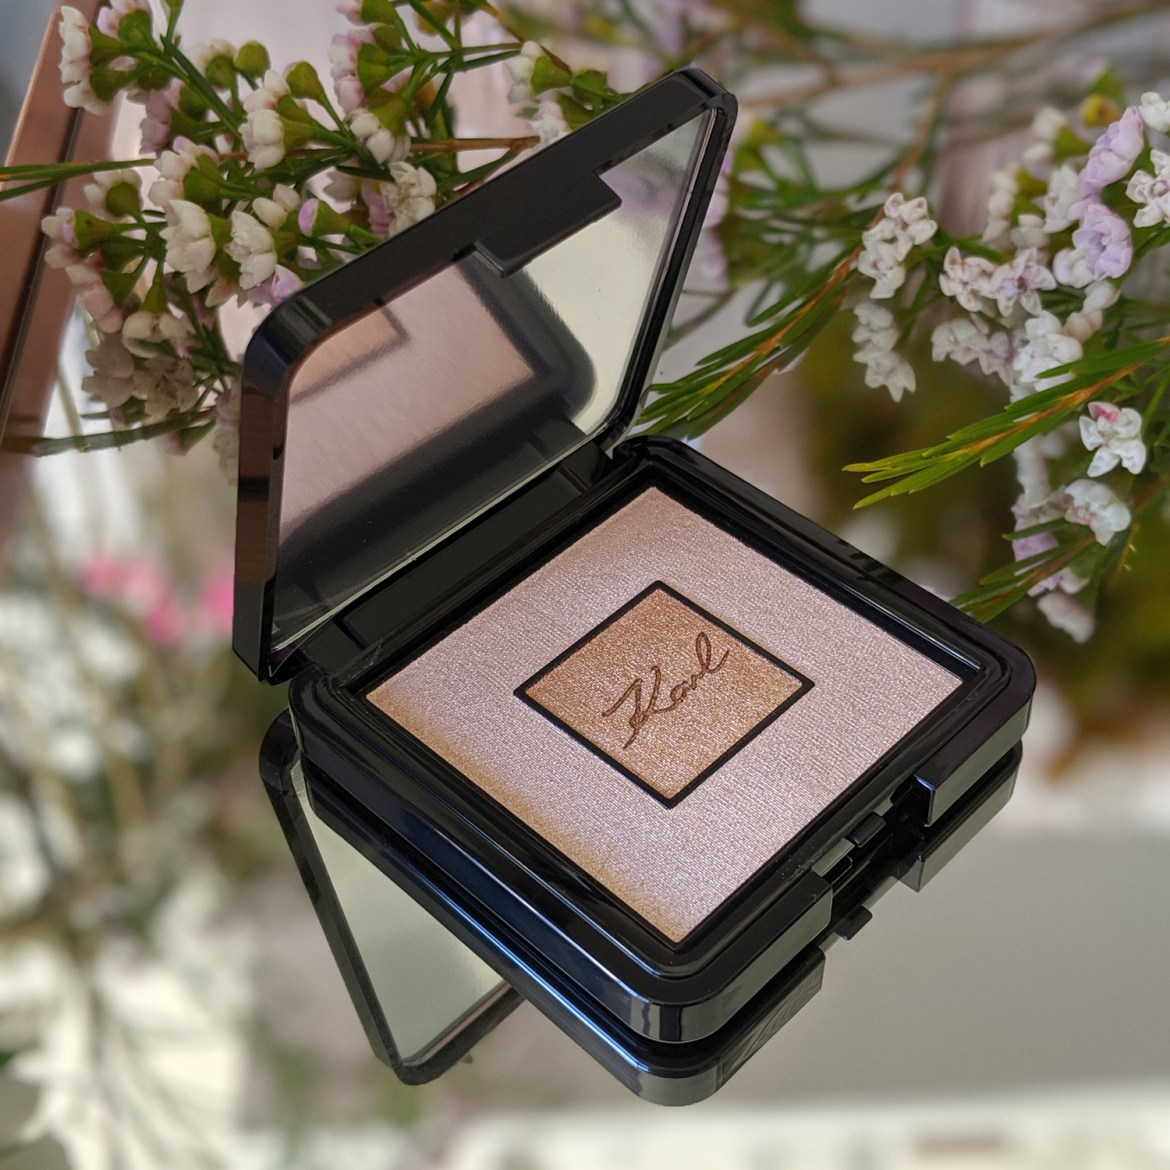 L'Orèal Paris x Karl Lagerfeld Highlighter